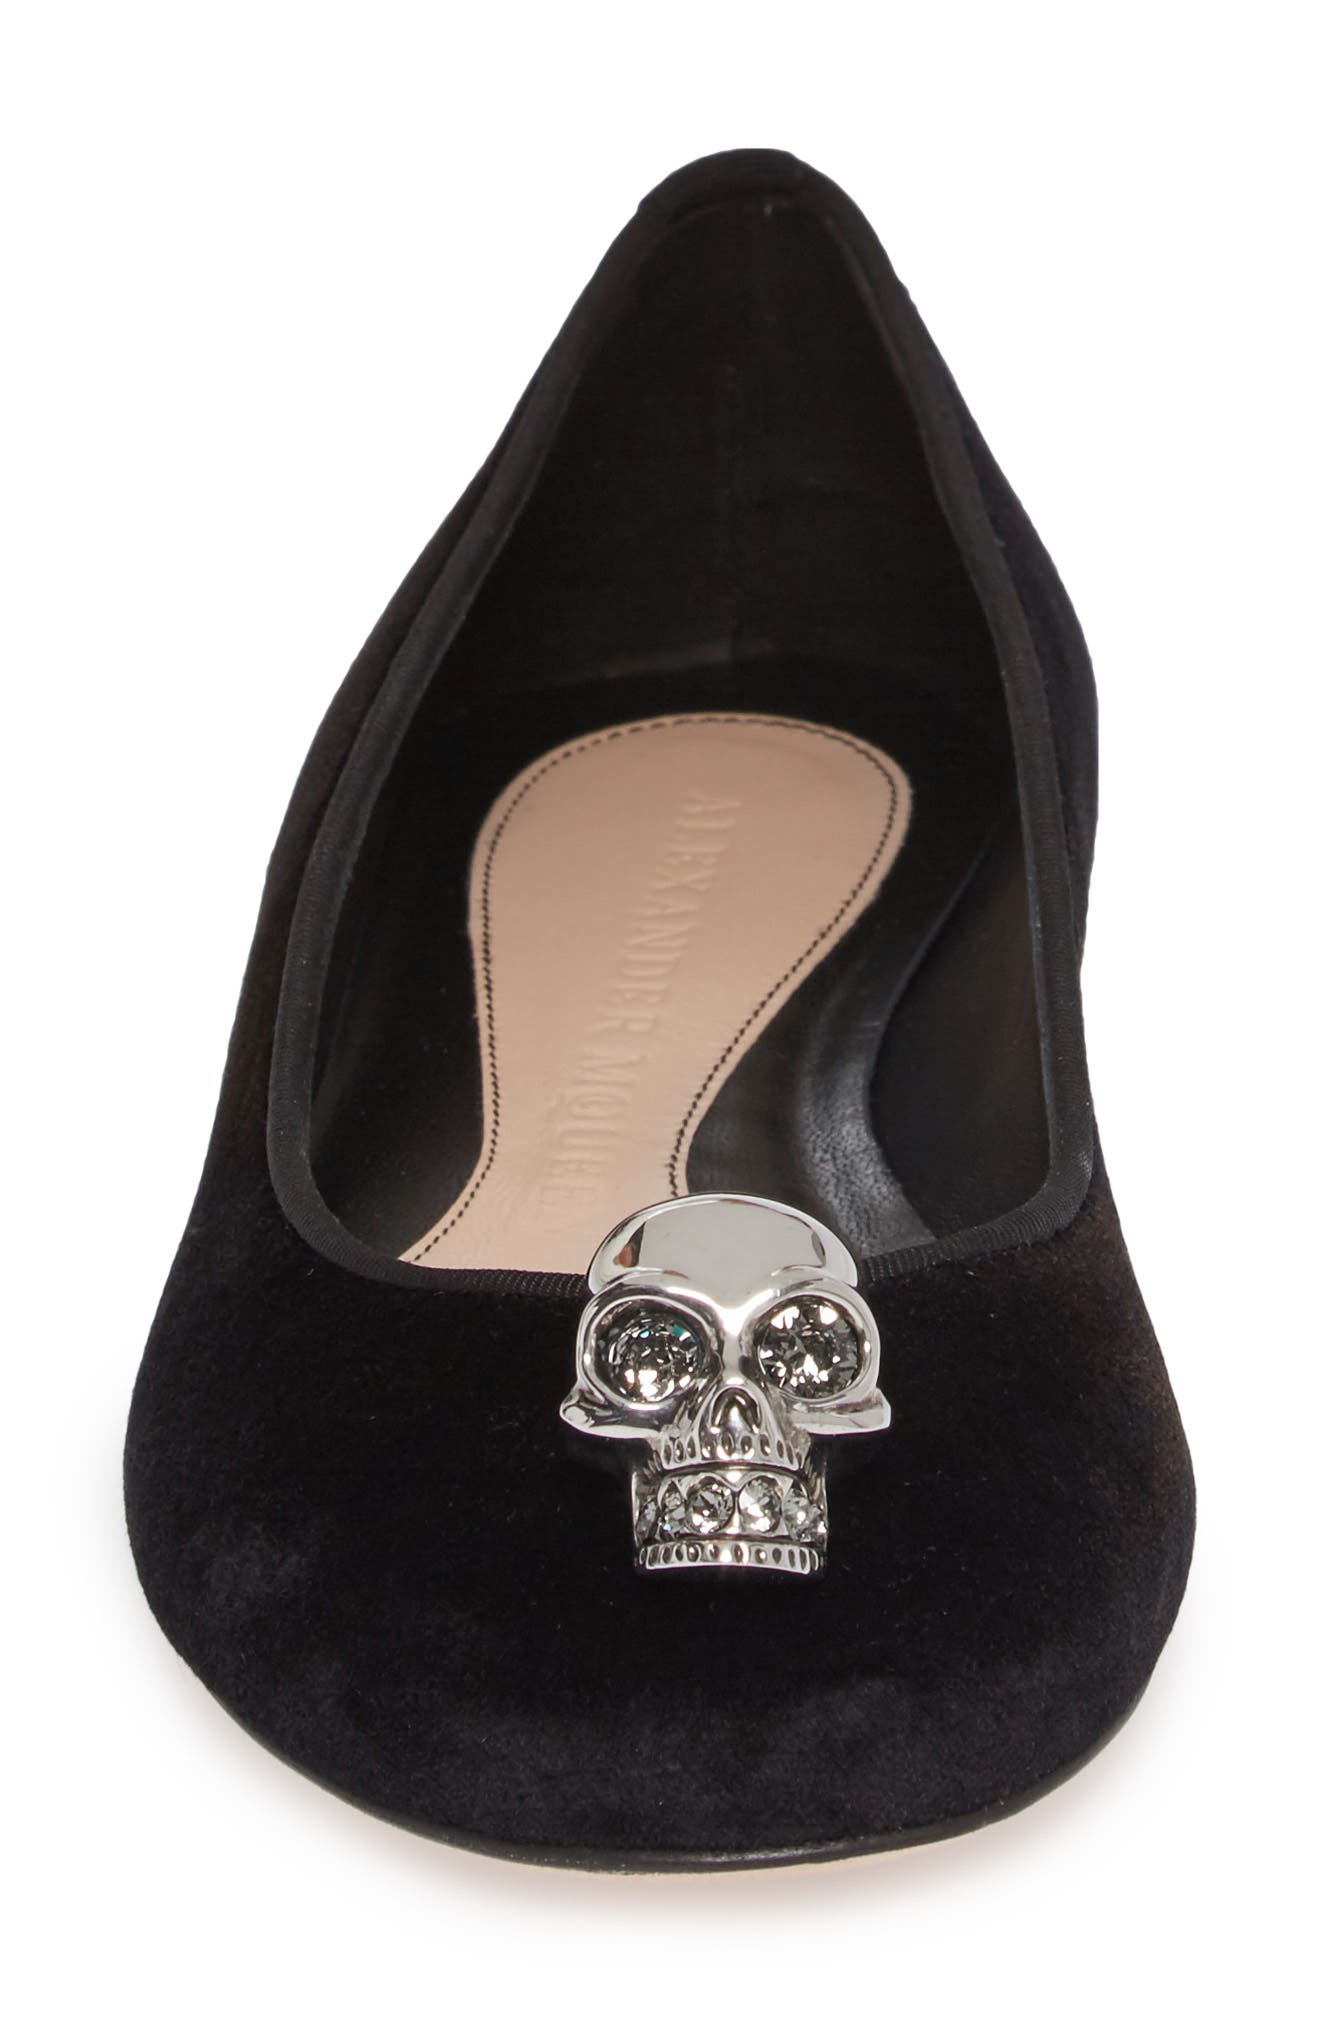 Skullhead Charm Flat,                             Alternate thumbnail 4, color,                             Black/ Silver